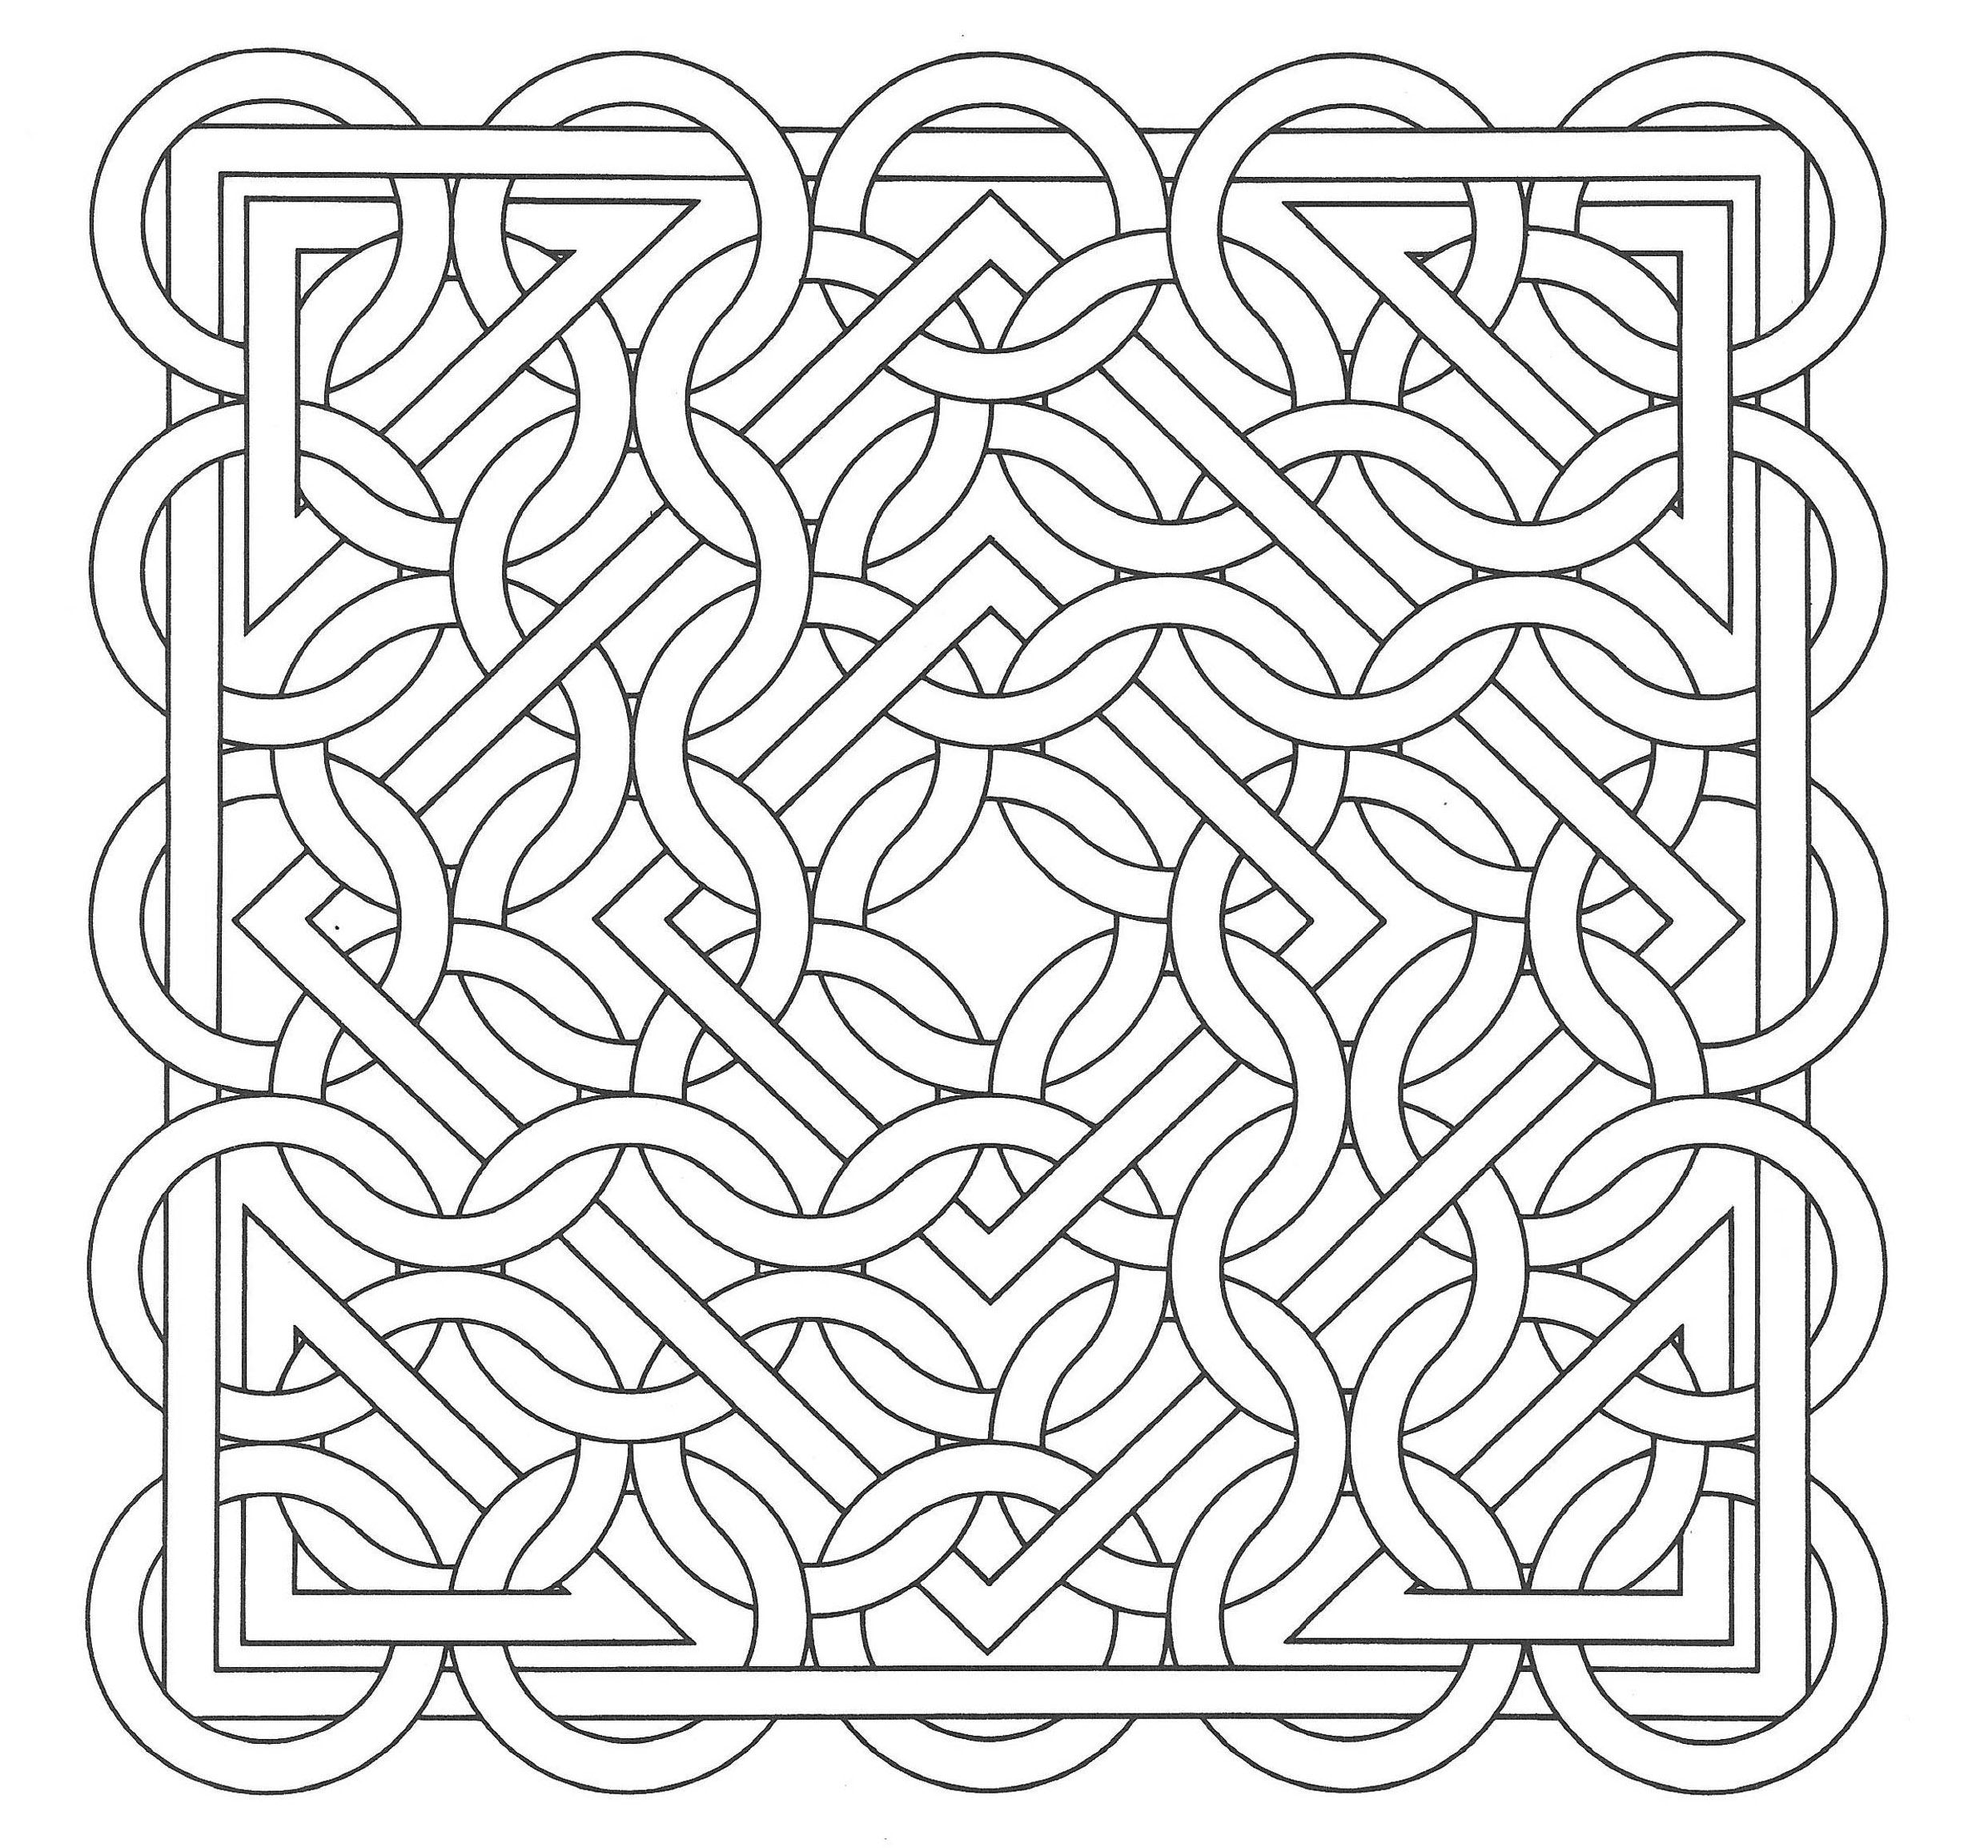 Coloring pages relaxing - Free Coloring Page Coloring Op Art Jean Larcher 15 An